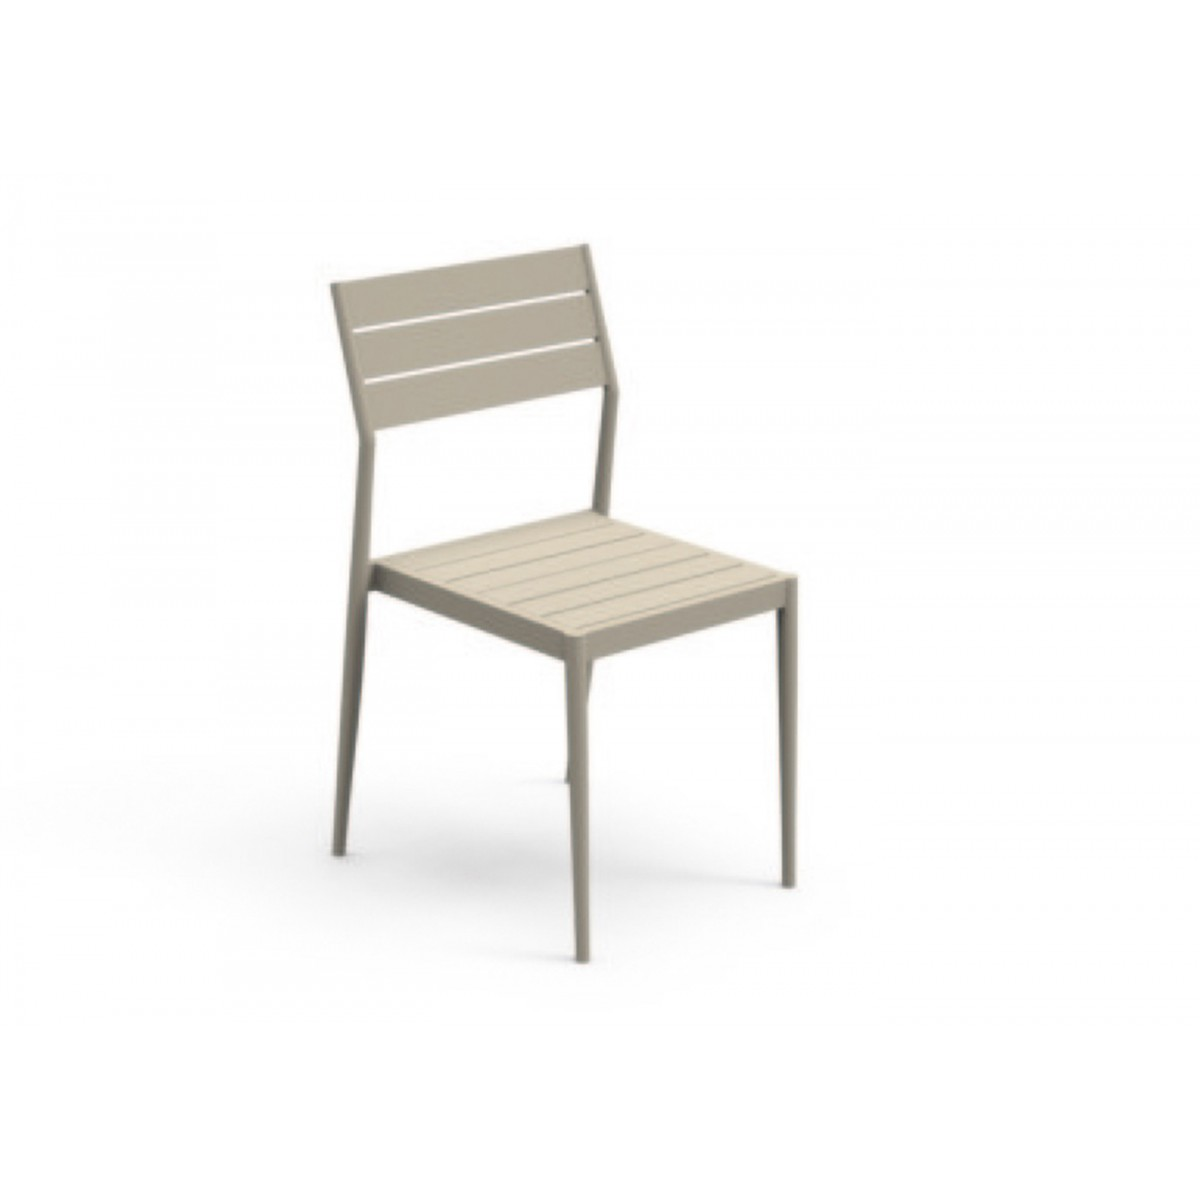 Table chaise exterieur maison design - Table et chaise exterieur ...